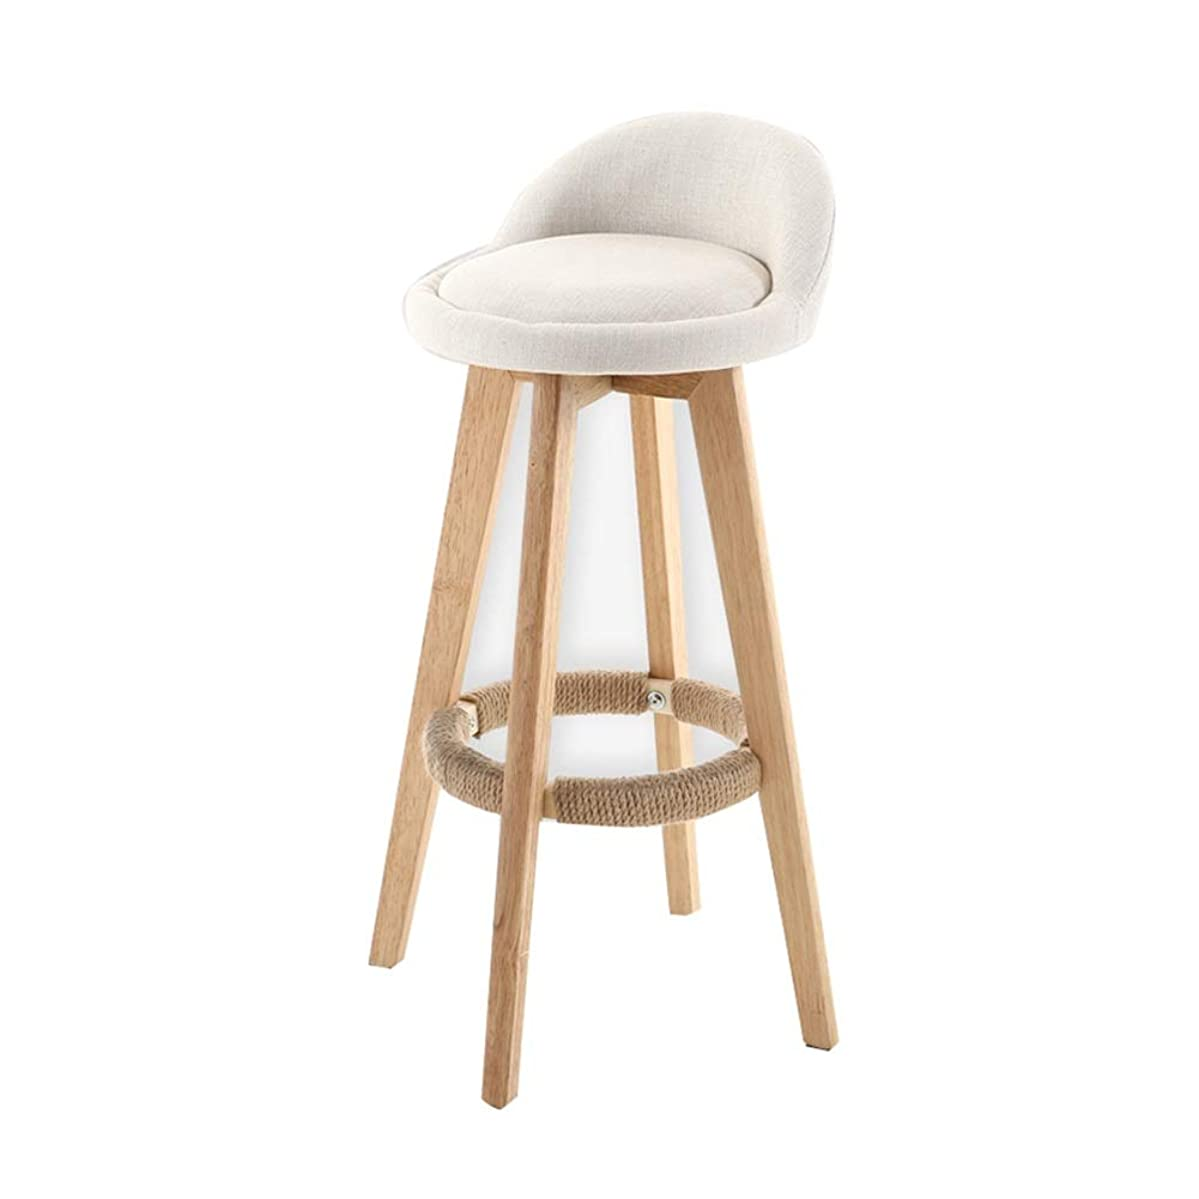 WEIYV-Barstools,bar Chair Kitchen Breakfast Bar Seating Counter Bar Chair Solid Wood High Stool Furniture Modern Style Plain Color Rotatable Linen (Color : Rice Plain, Size : 86353434cm)